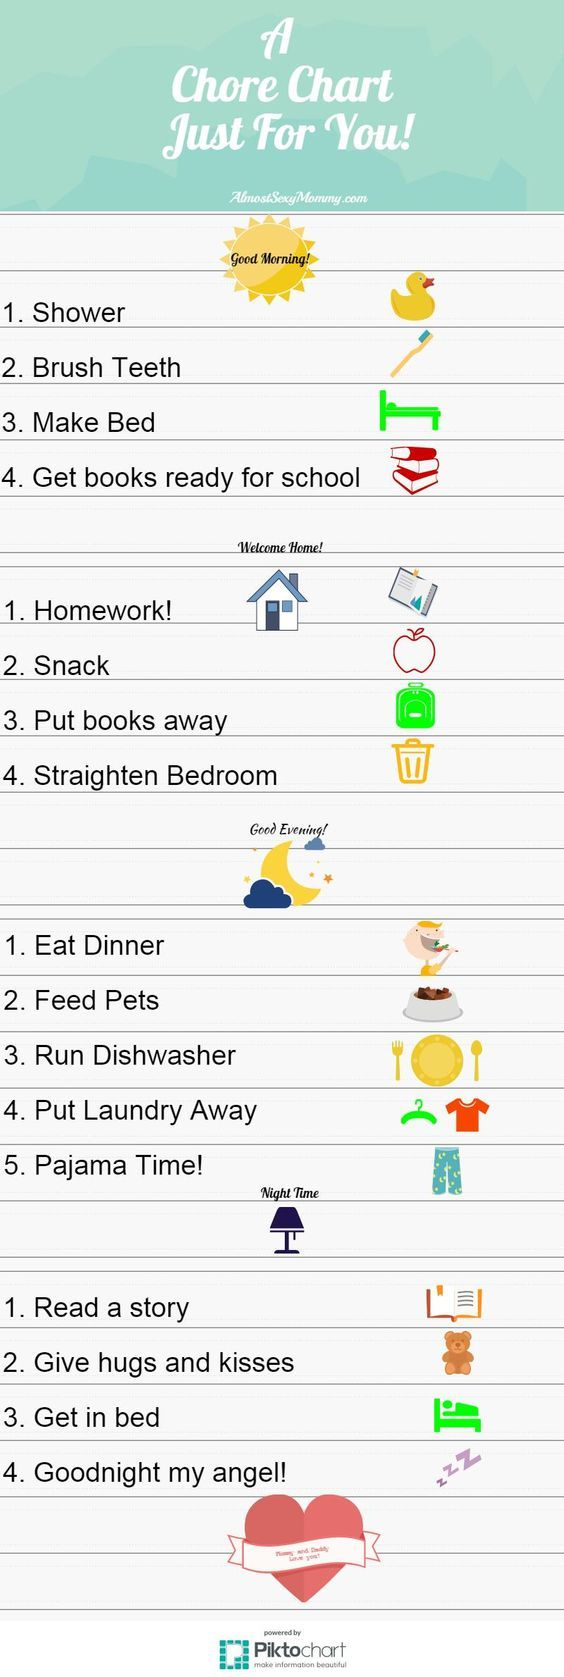 25+ Best Ideas about Adhd Activities on Pinterest   Calming ...